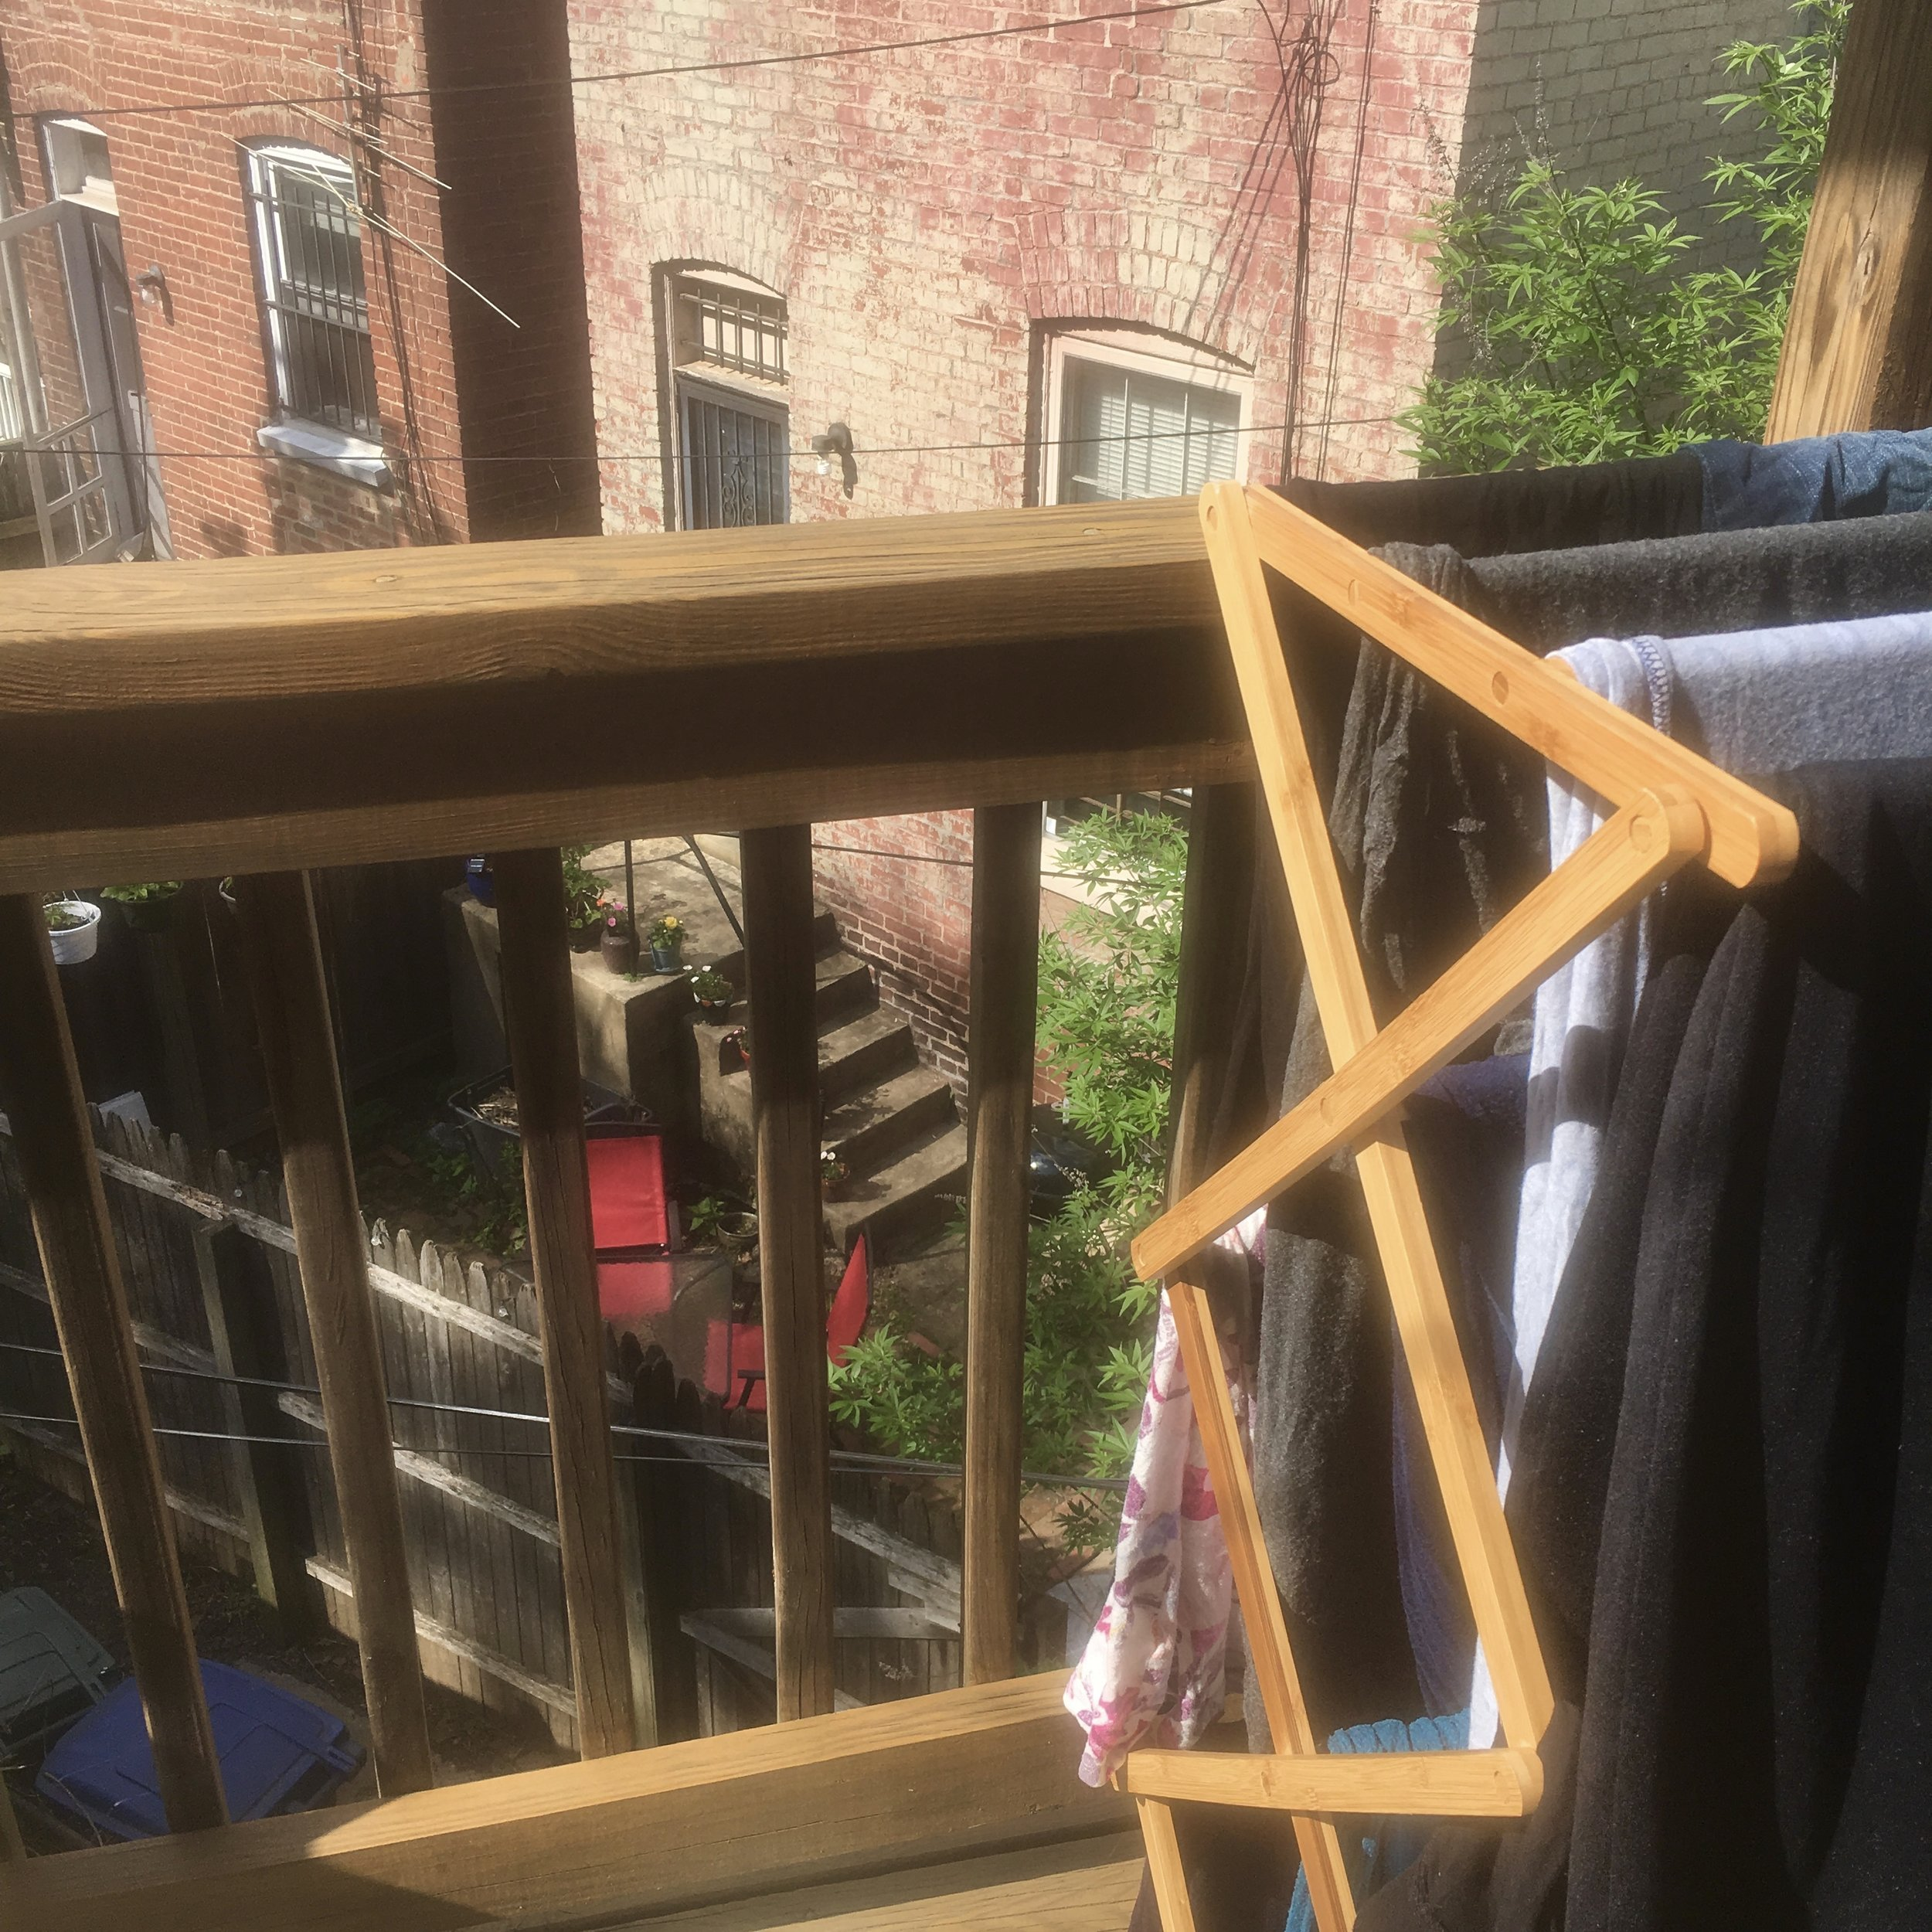 Image: A view of rowhouse back alleys and balconies with a rack of drying clothes on a balcony. Image copyright Elisabeth Caron